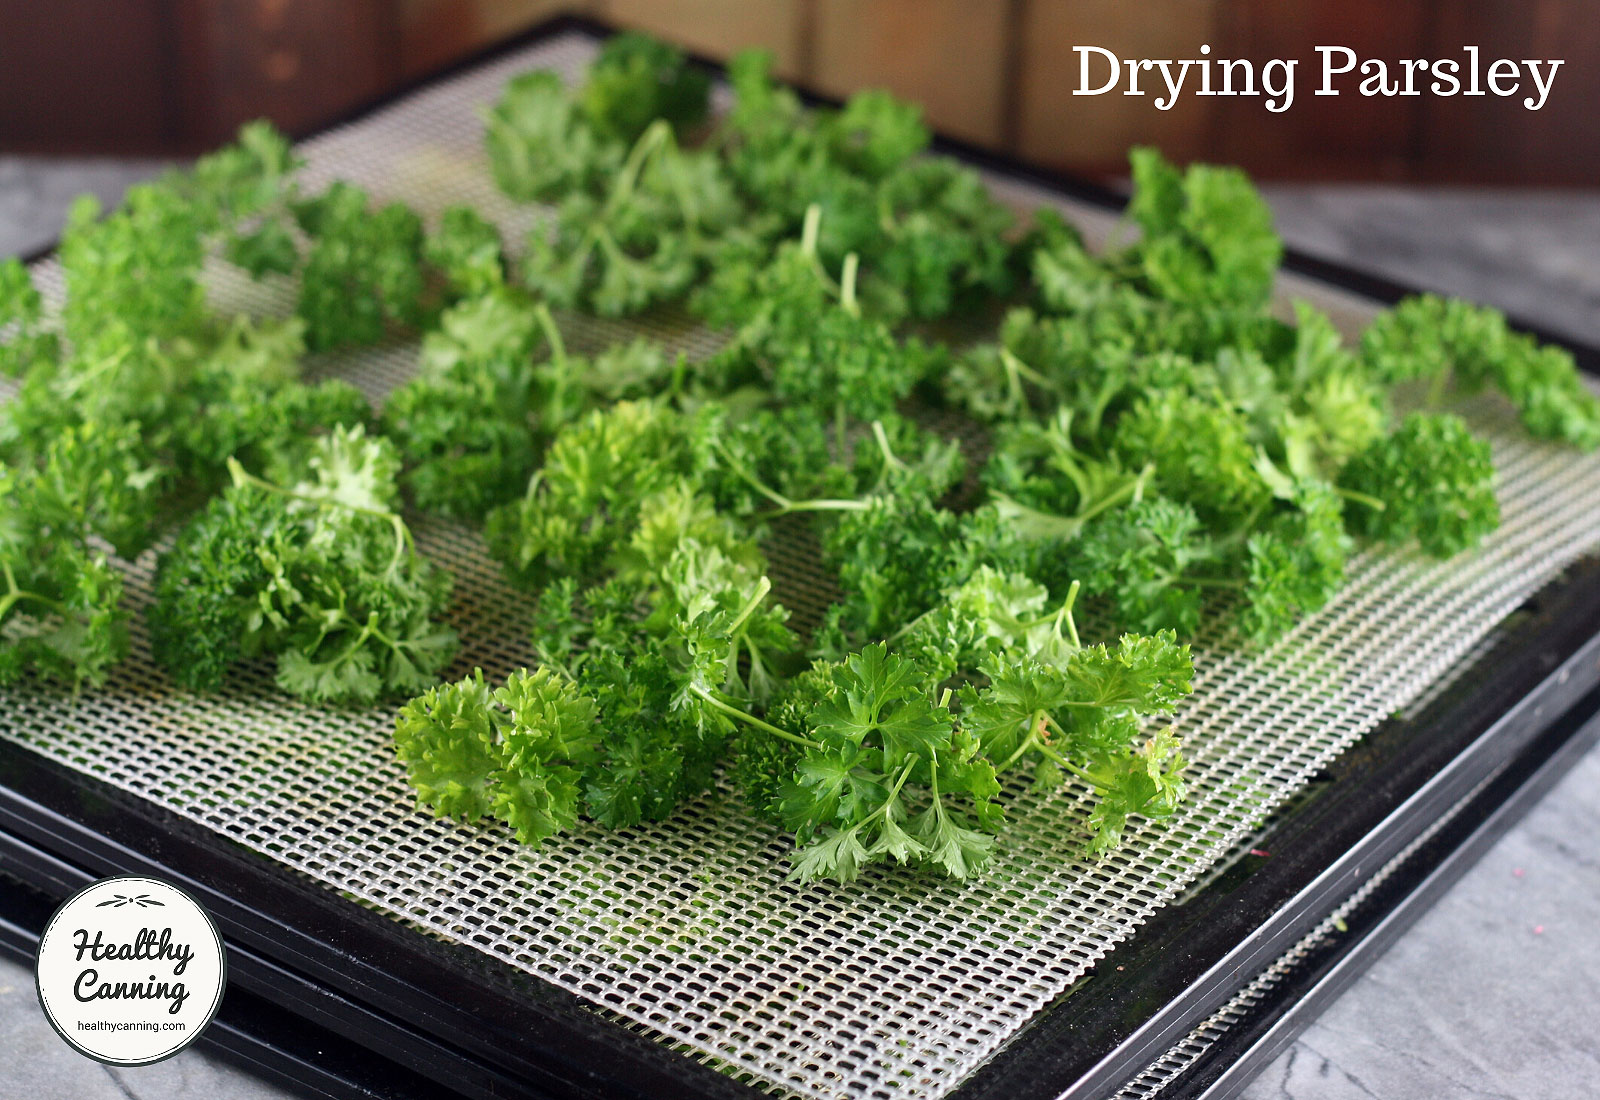 Drying curly parsley